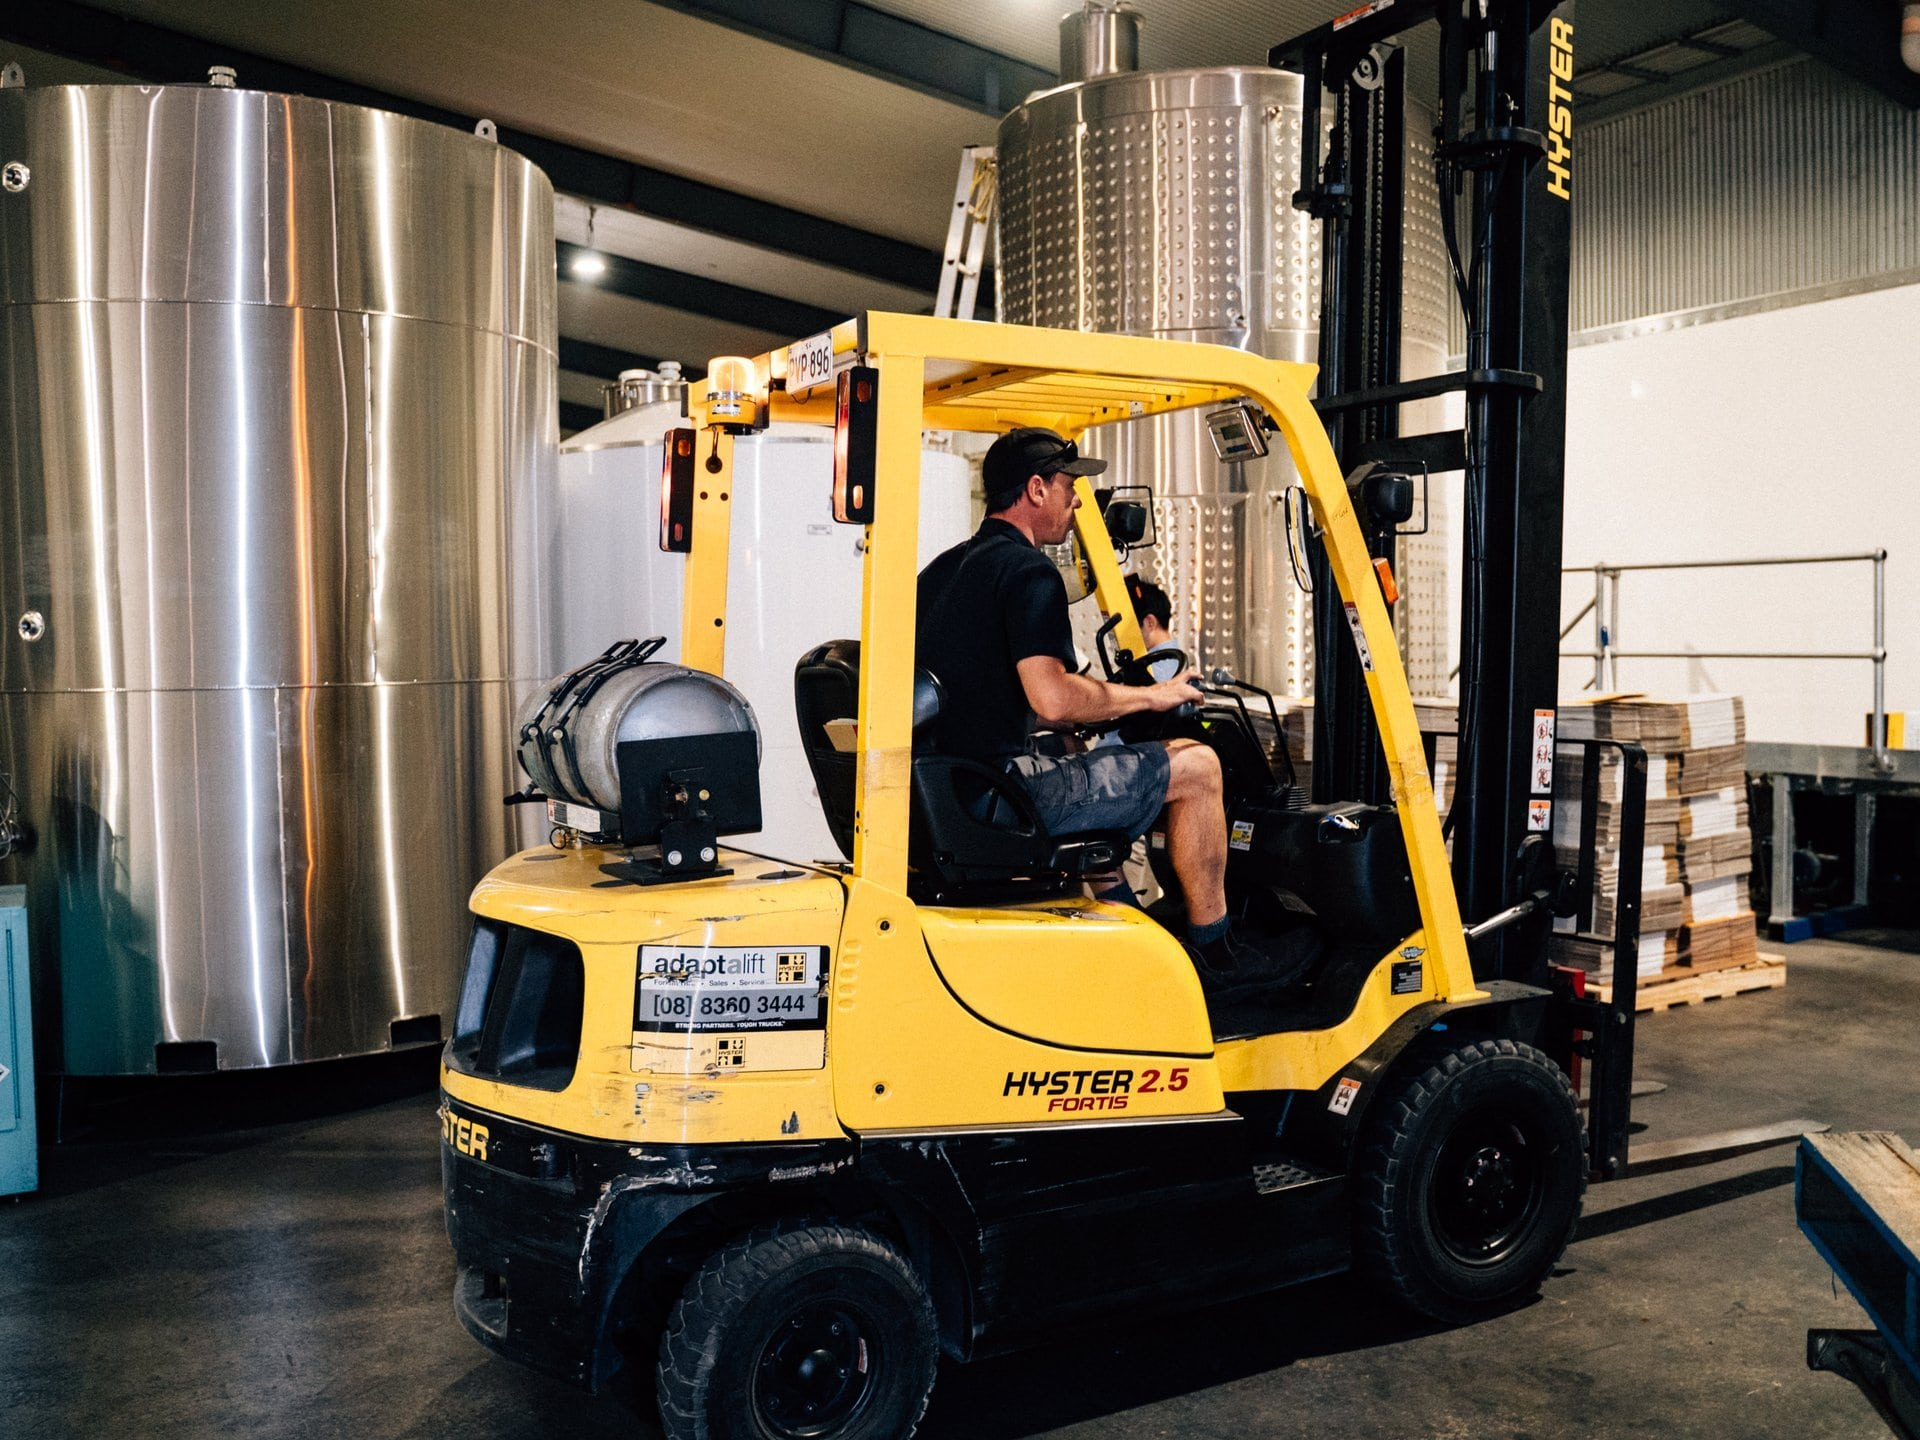 Forklift & Driver in winery